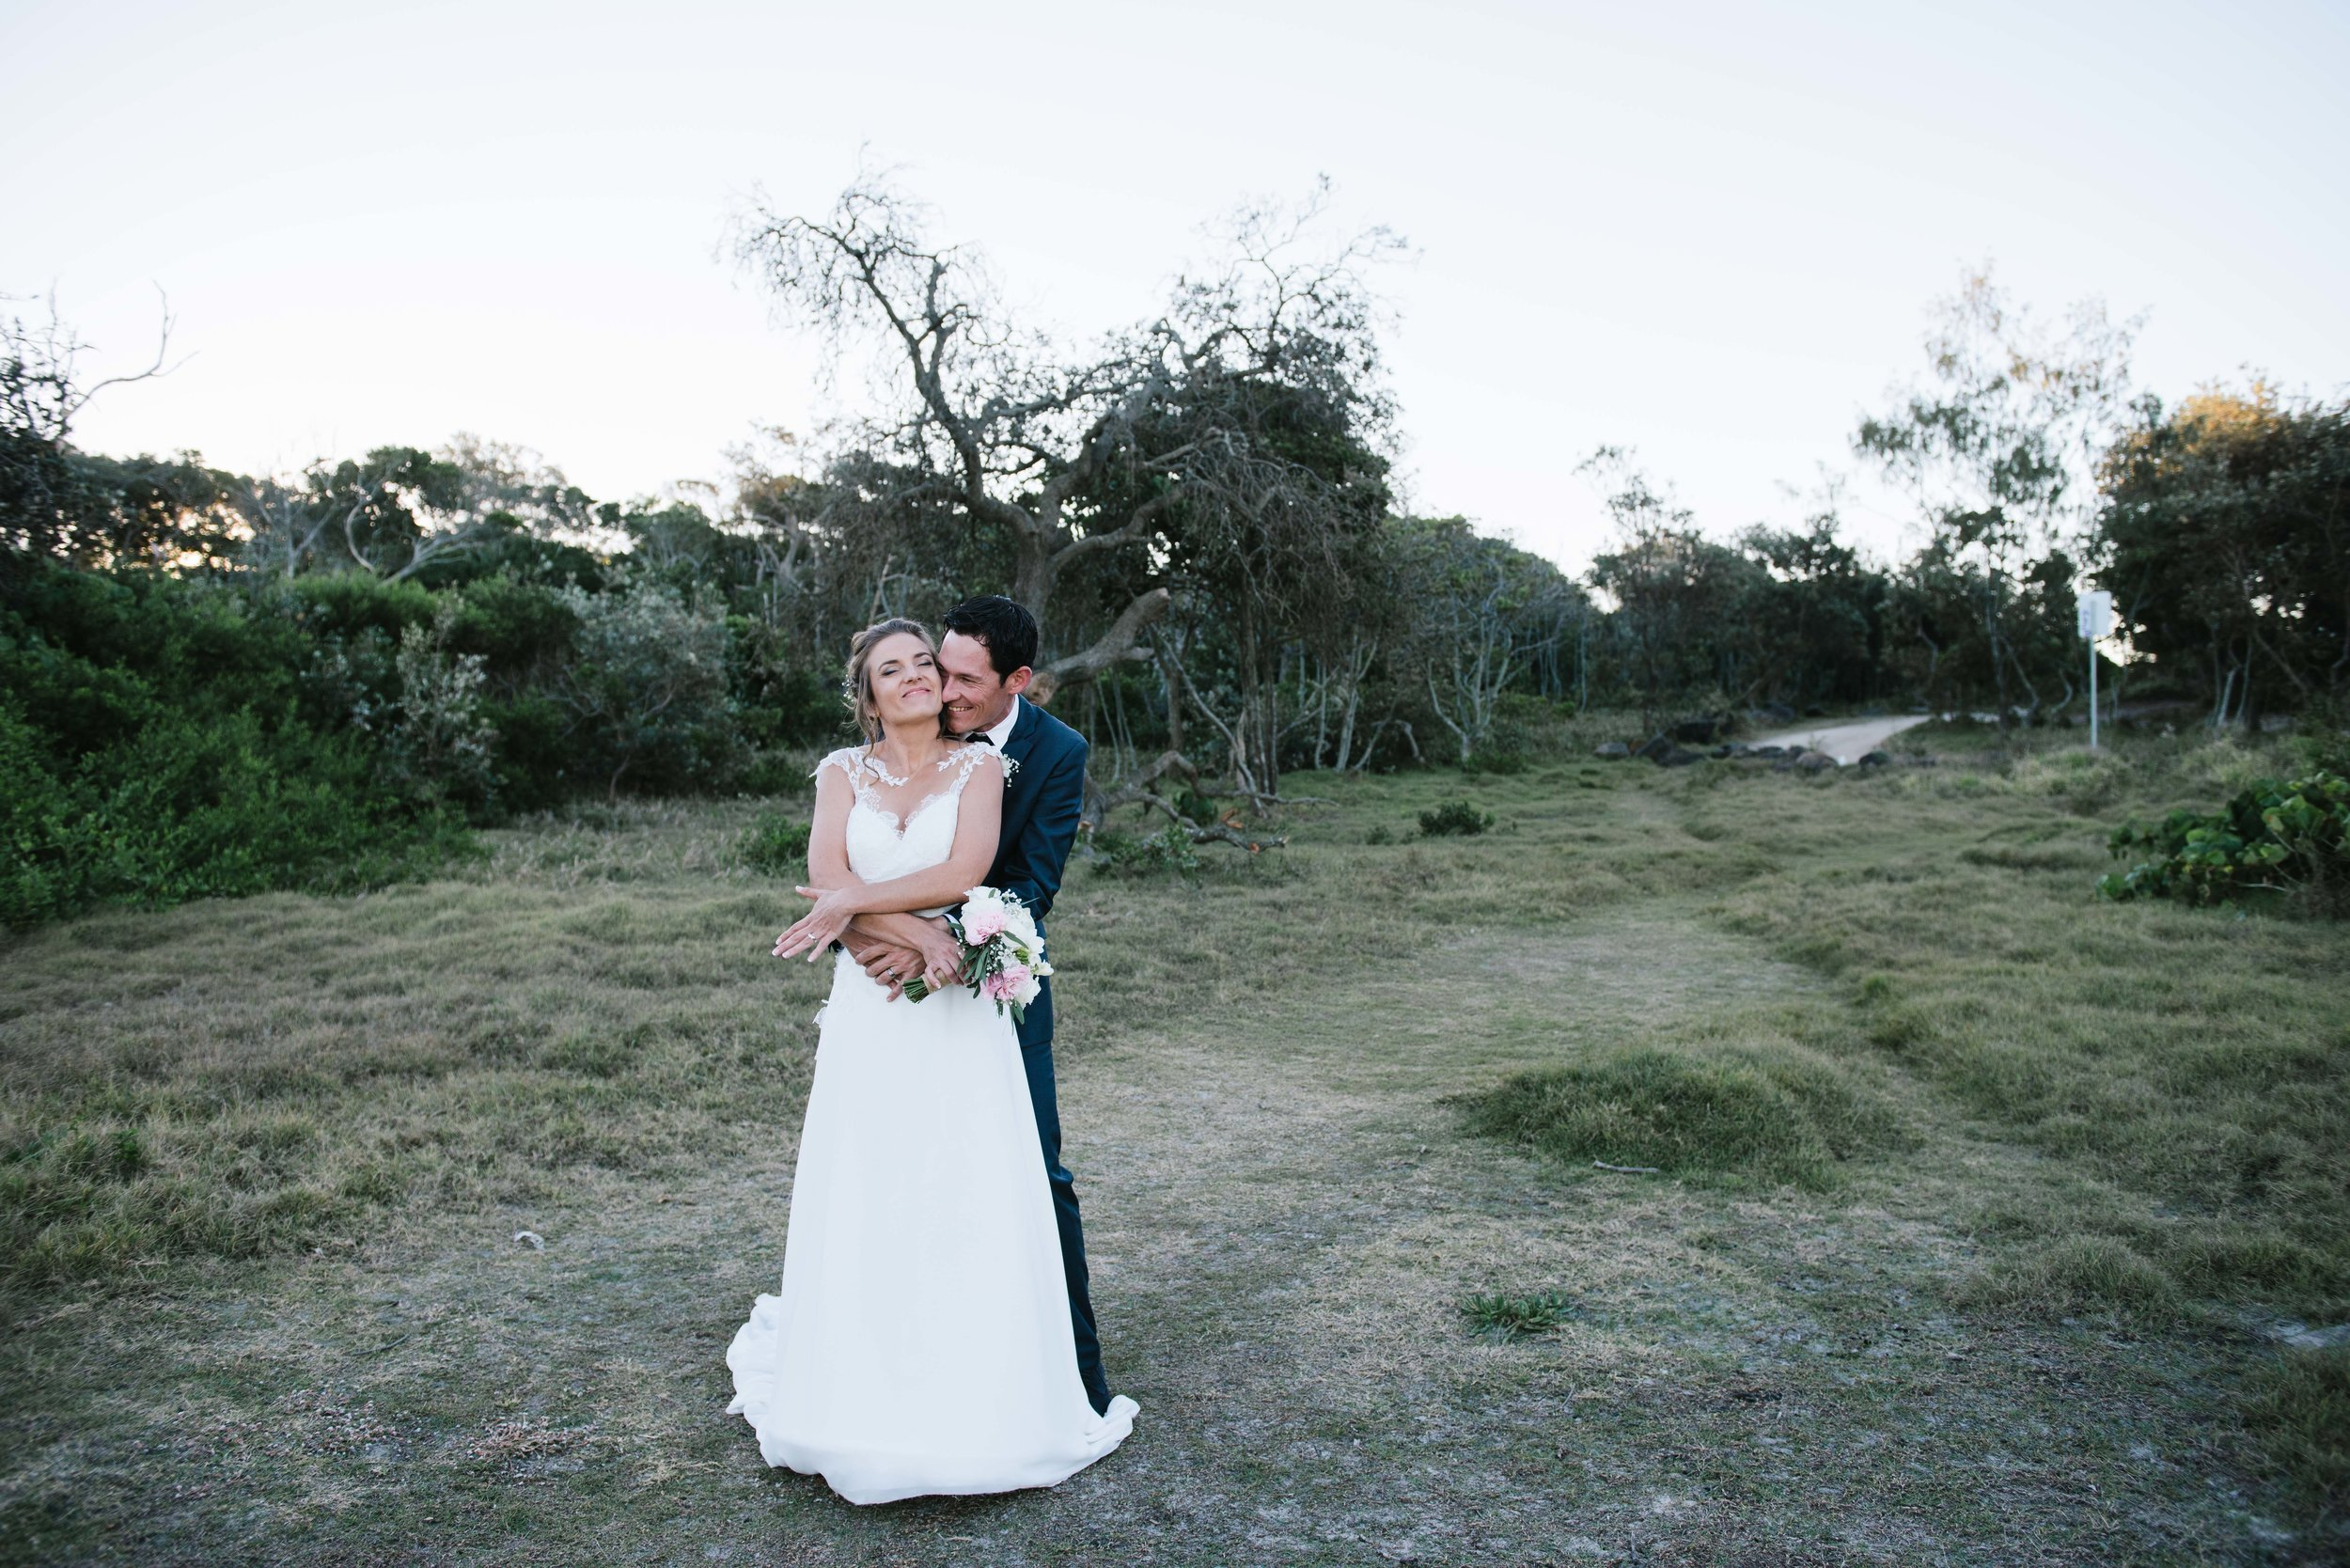 Am and Sam- skyla sage photography weddings, families, byron bay,tweed coast,kingscliff,cabarita,gold coast-523.jpg